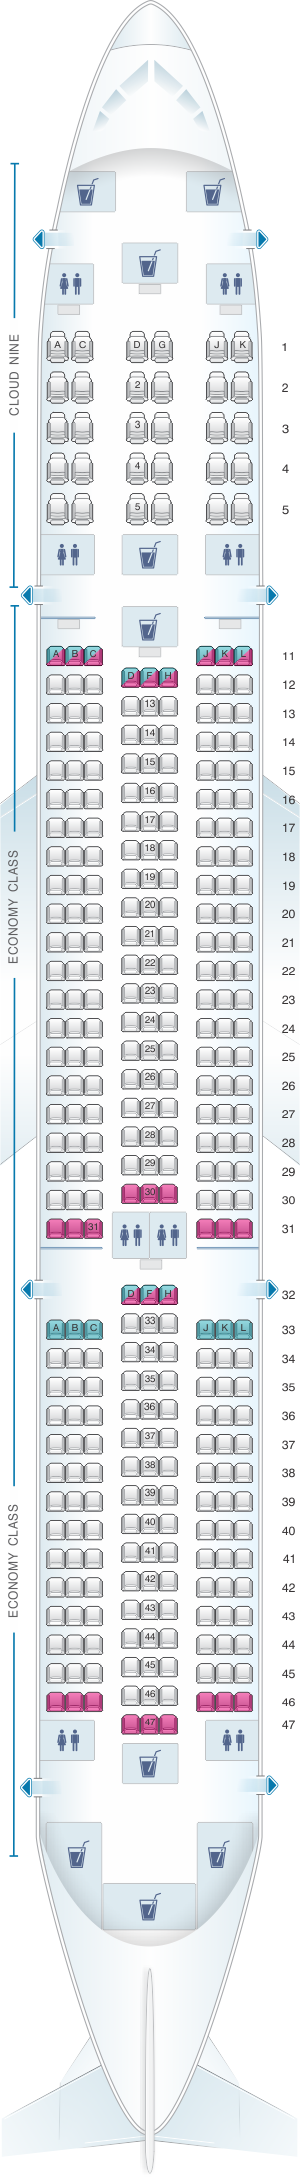 Seat map for Ethiopian Airbus A350 900